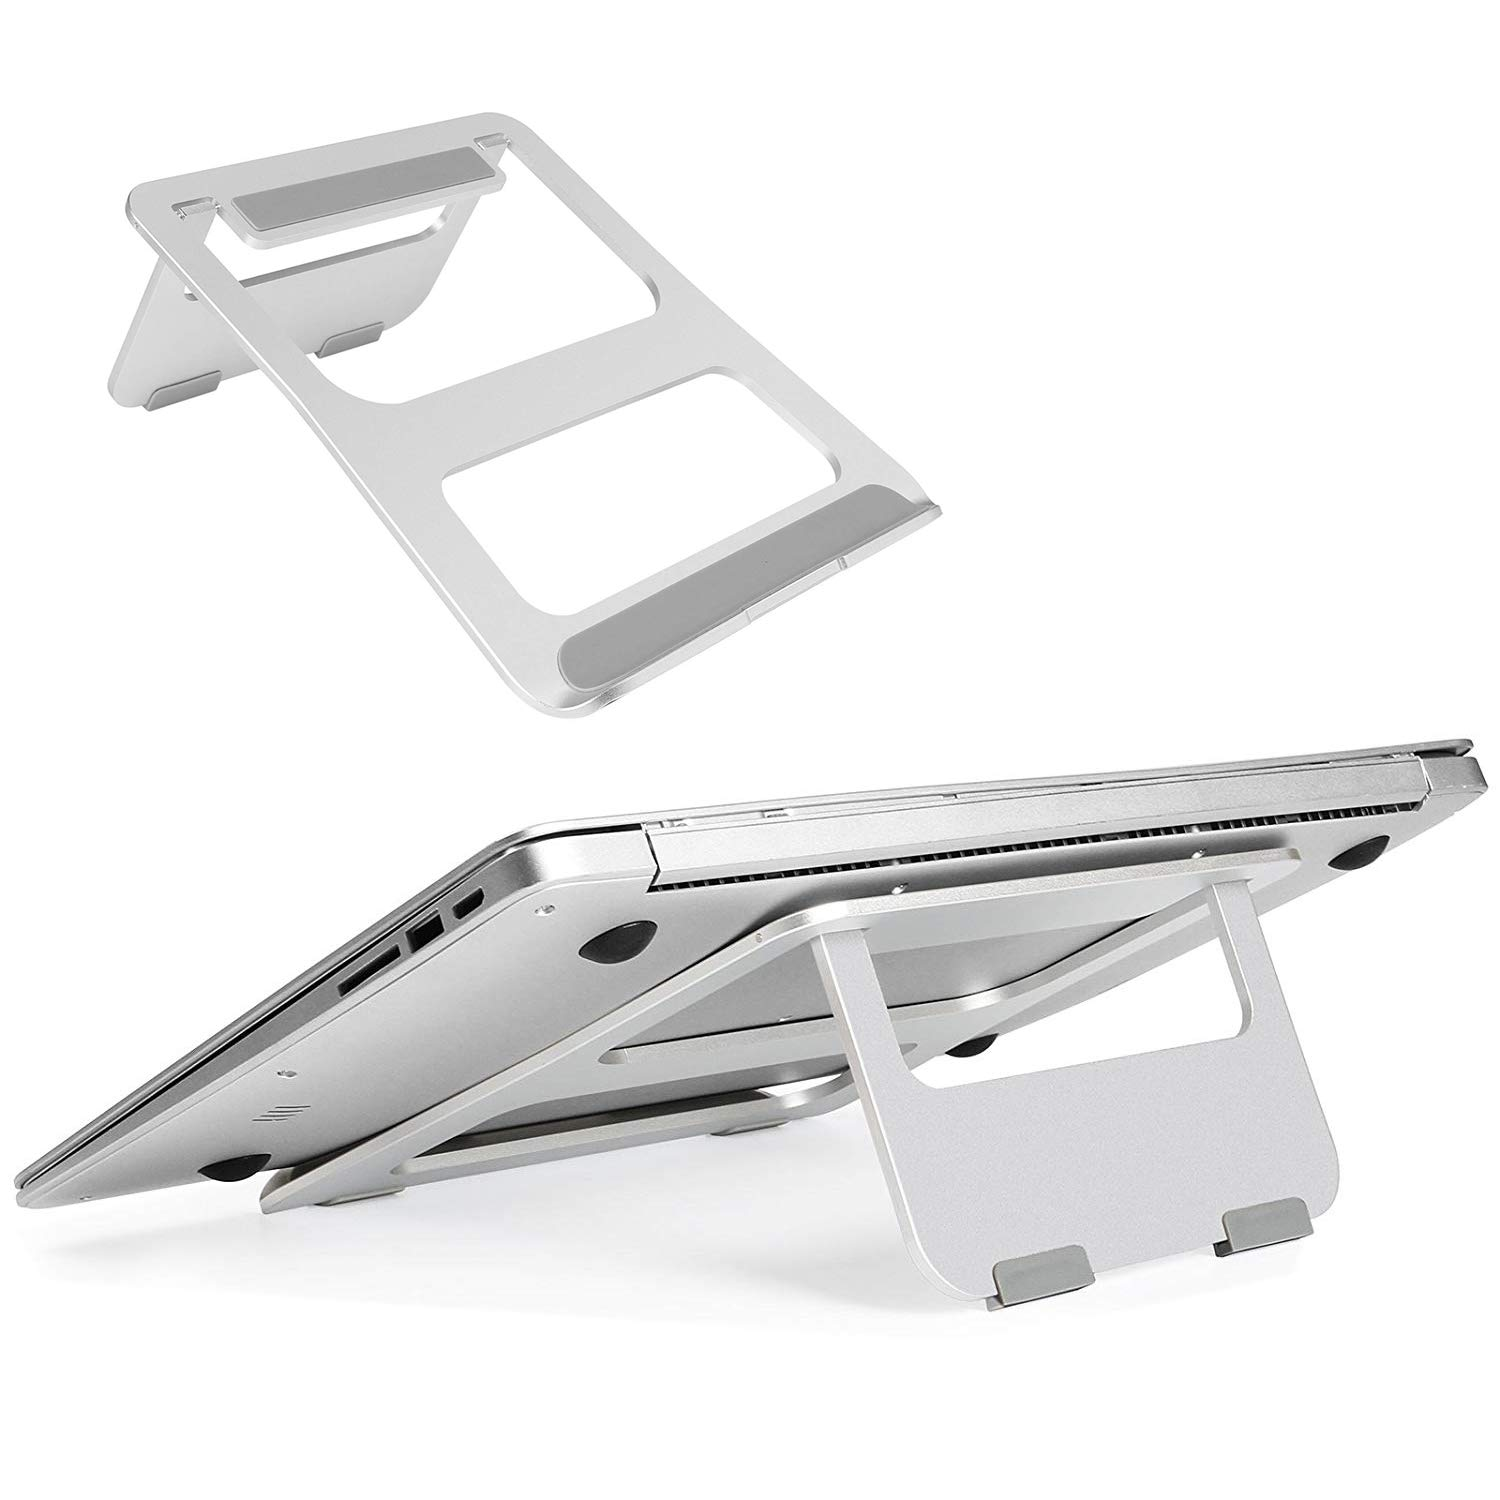 Laptop Stand Portable, CreaDream Adjustable Multi-Angle Aluminum Notebook Computer Stand, Fits MacBook and Laptops up to 17 inches, Silver